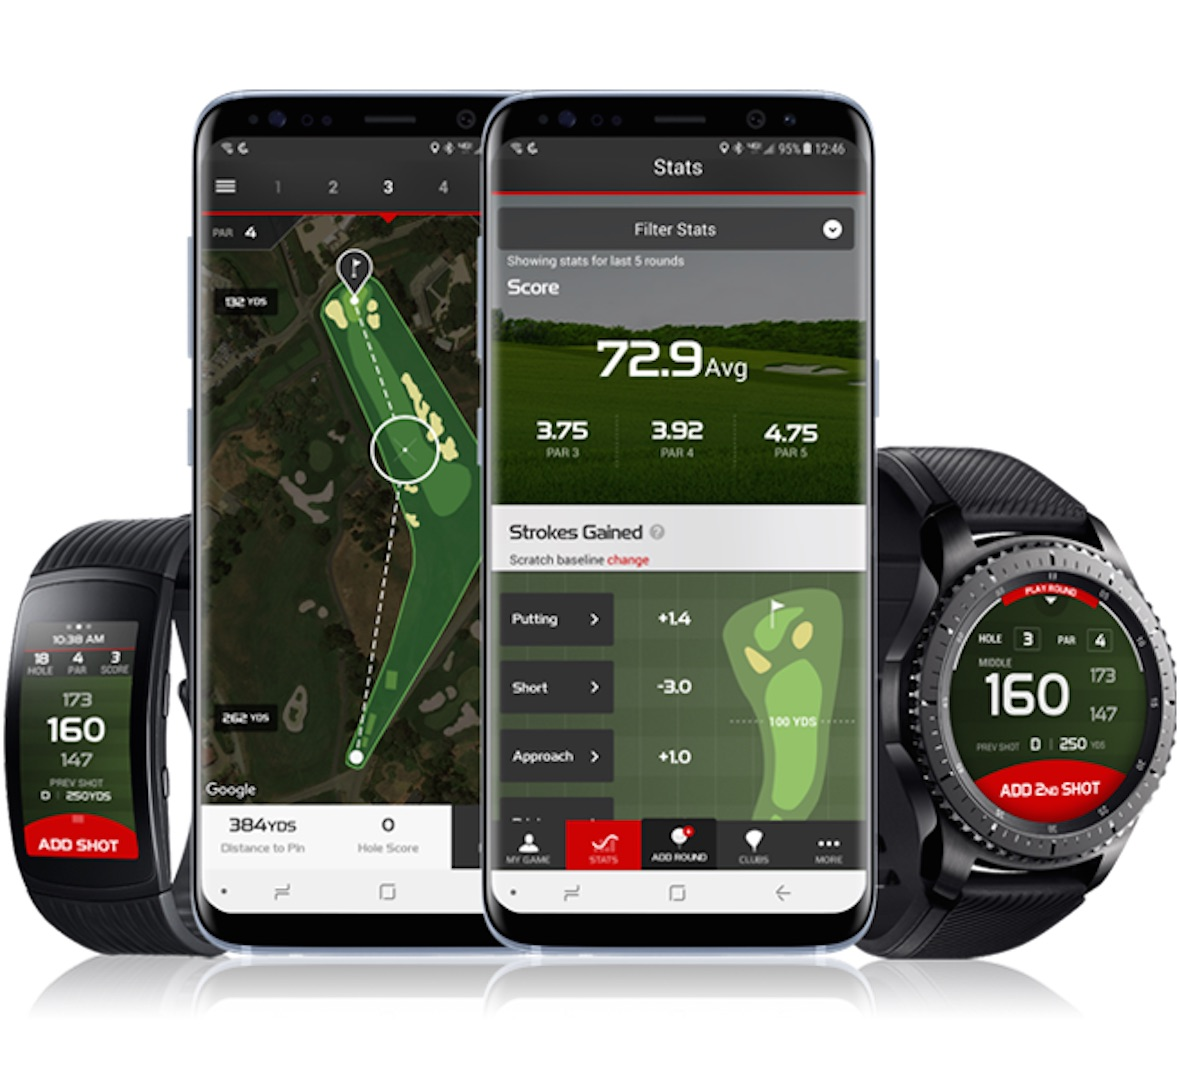 TaylorMade Solution for Samsung